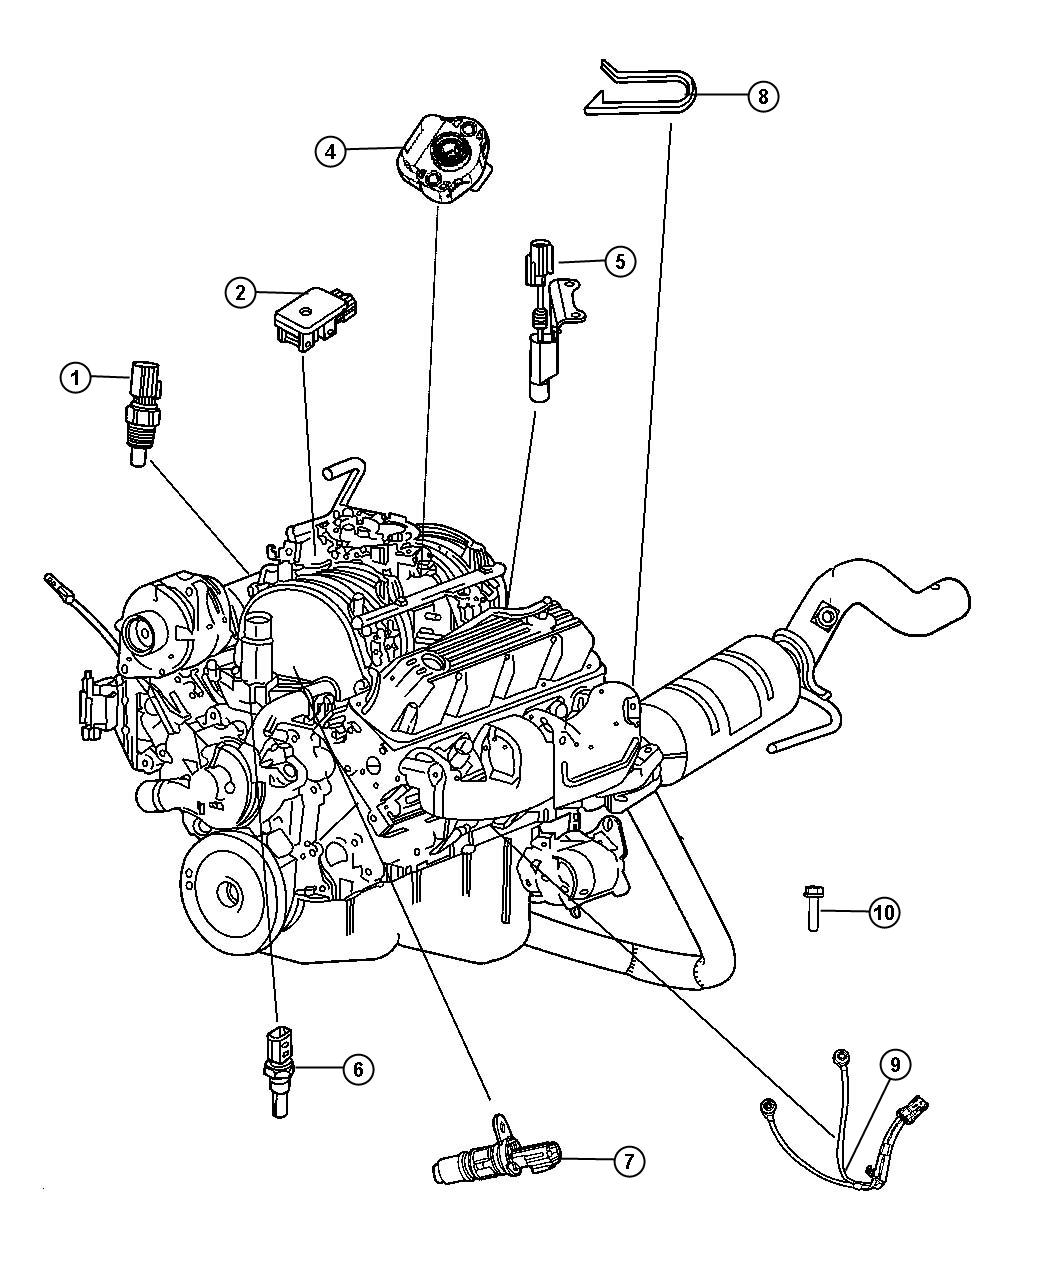 Chevy silverado tail light wiring diagram also discussion t27245 ds643672 as well chrysler 300 fuse box